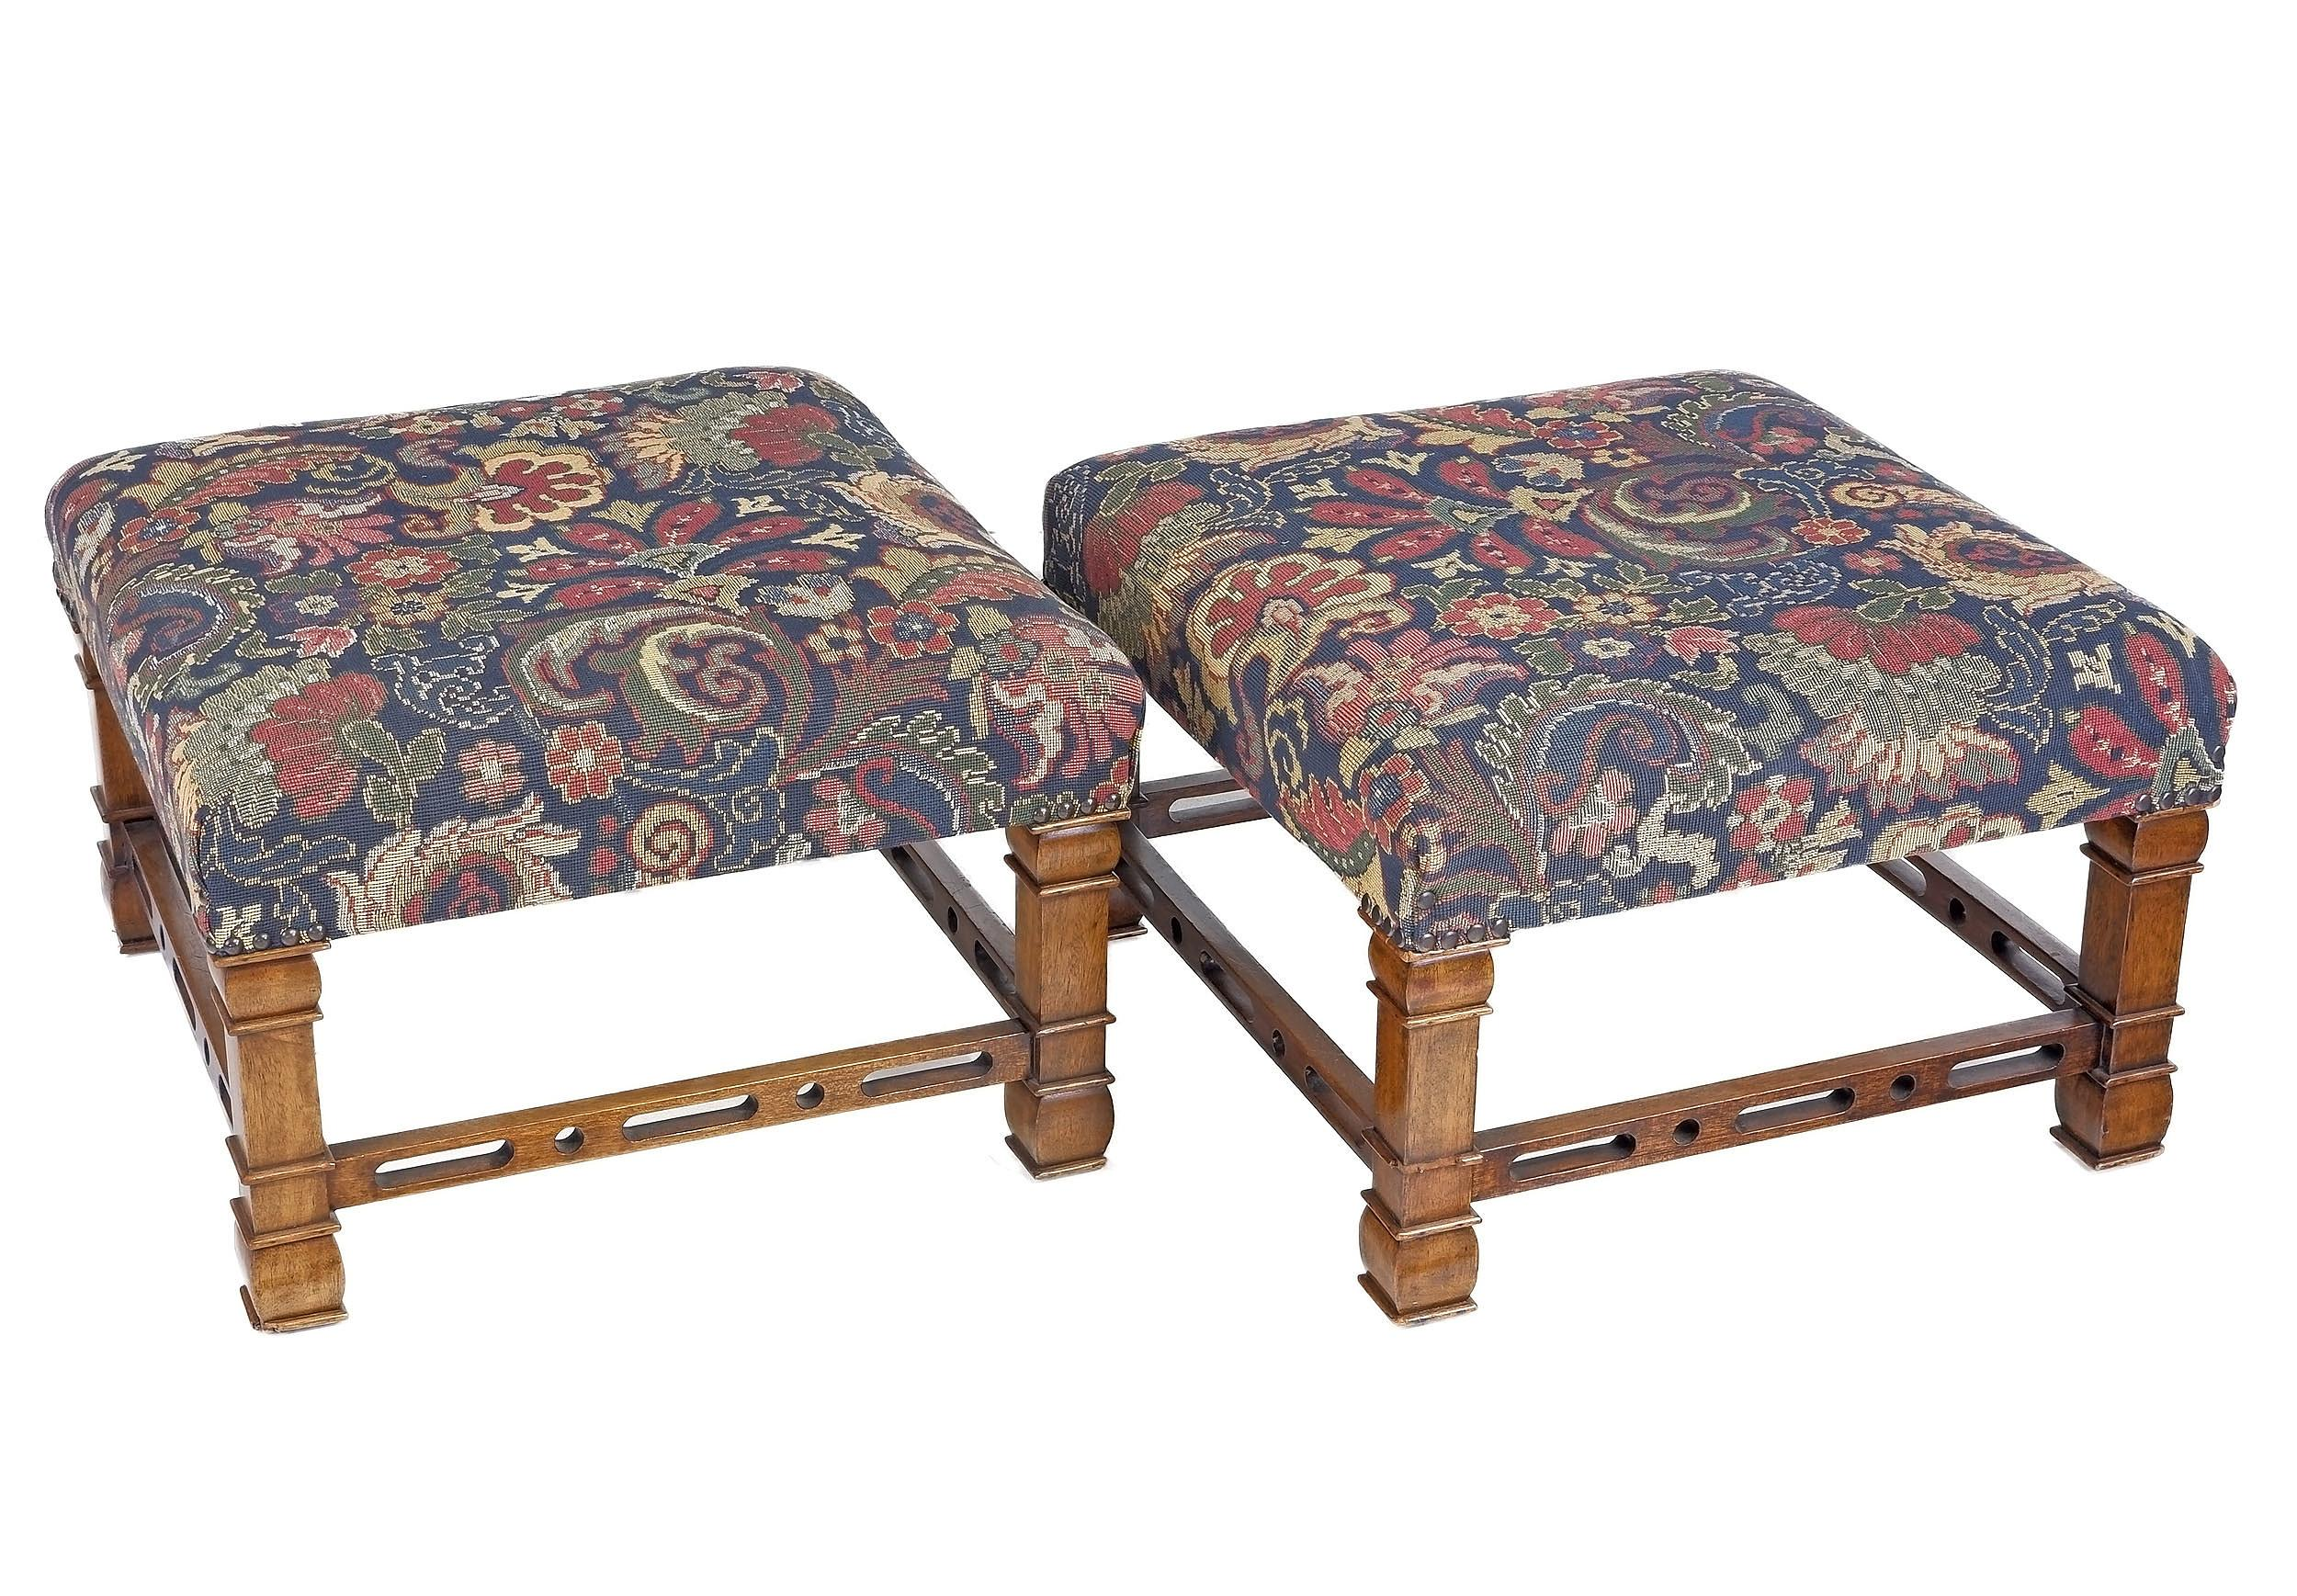 'Pair of Chinese Chippendale Style Stools with Tapestry Upholstery'